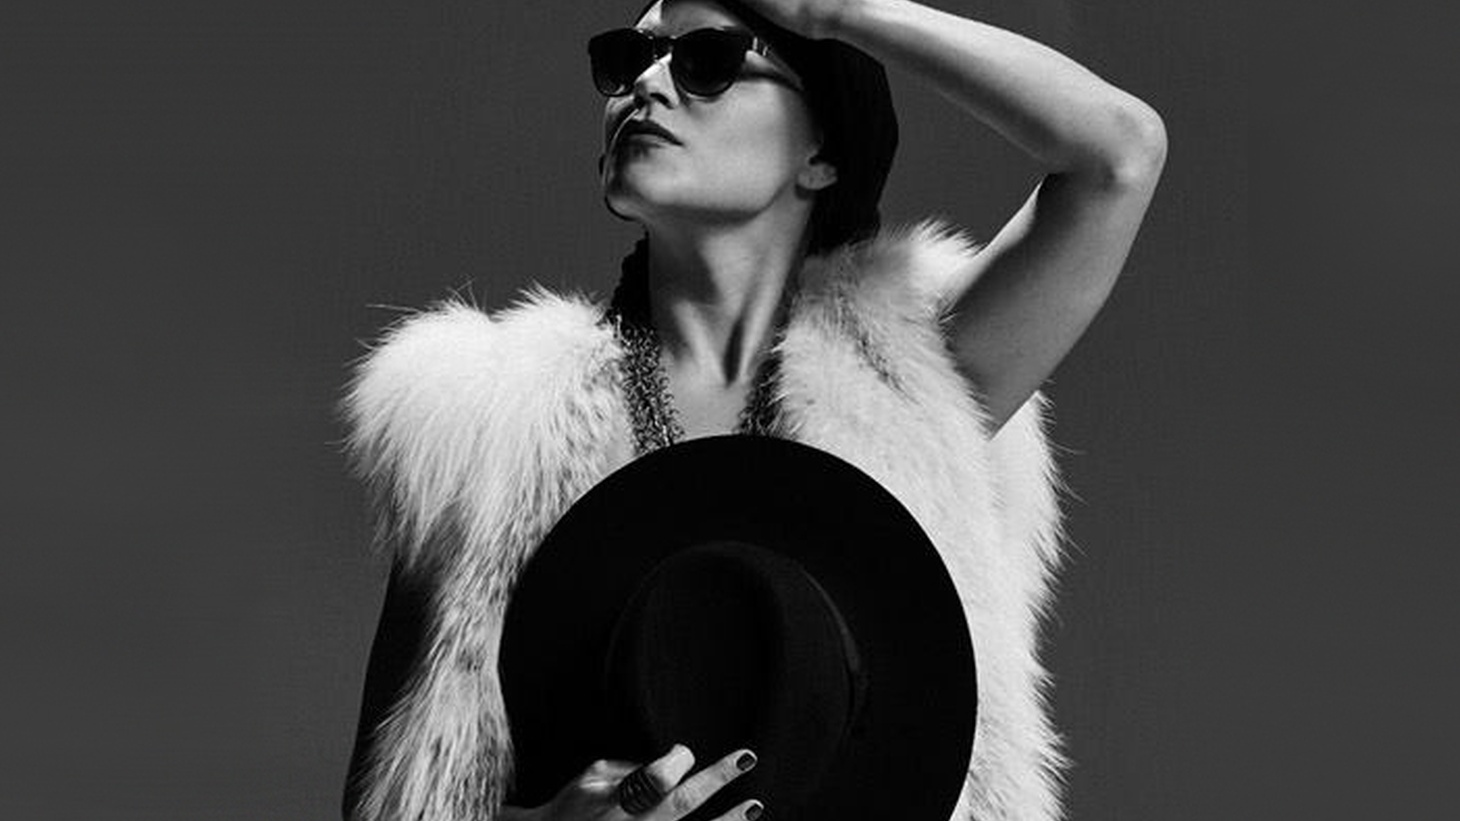 Tom Schnabel features two cuts by the immensely talented Melody Gardot, who has a show this coming Wednesday at the Ace Hotel downtown. (10am)